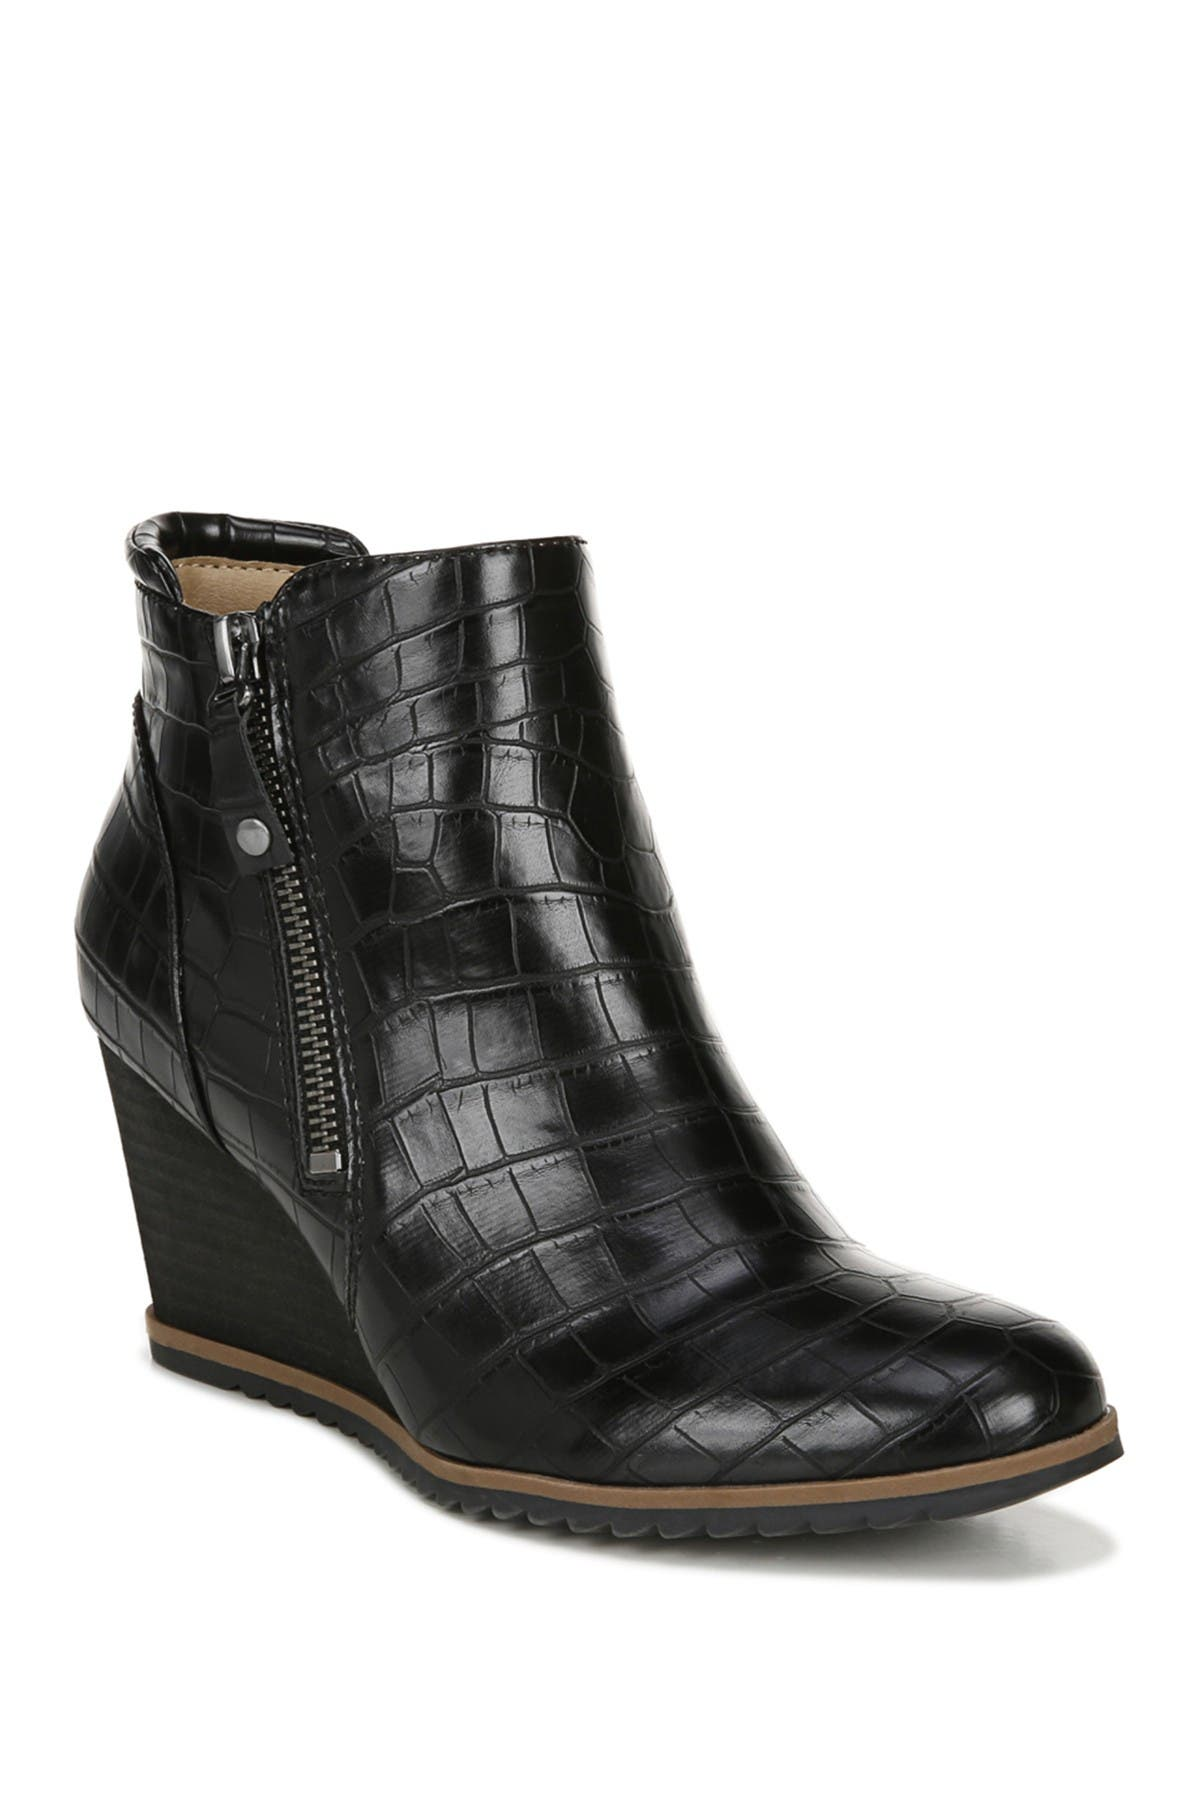 Image of SOUL Naturalizer Haley Croc Embossed Wedge Bootie